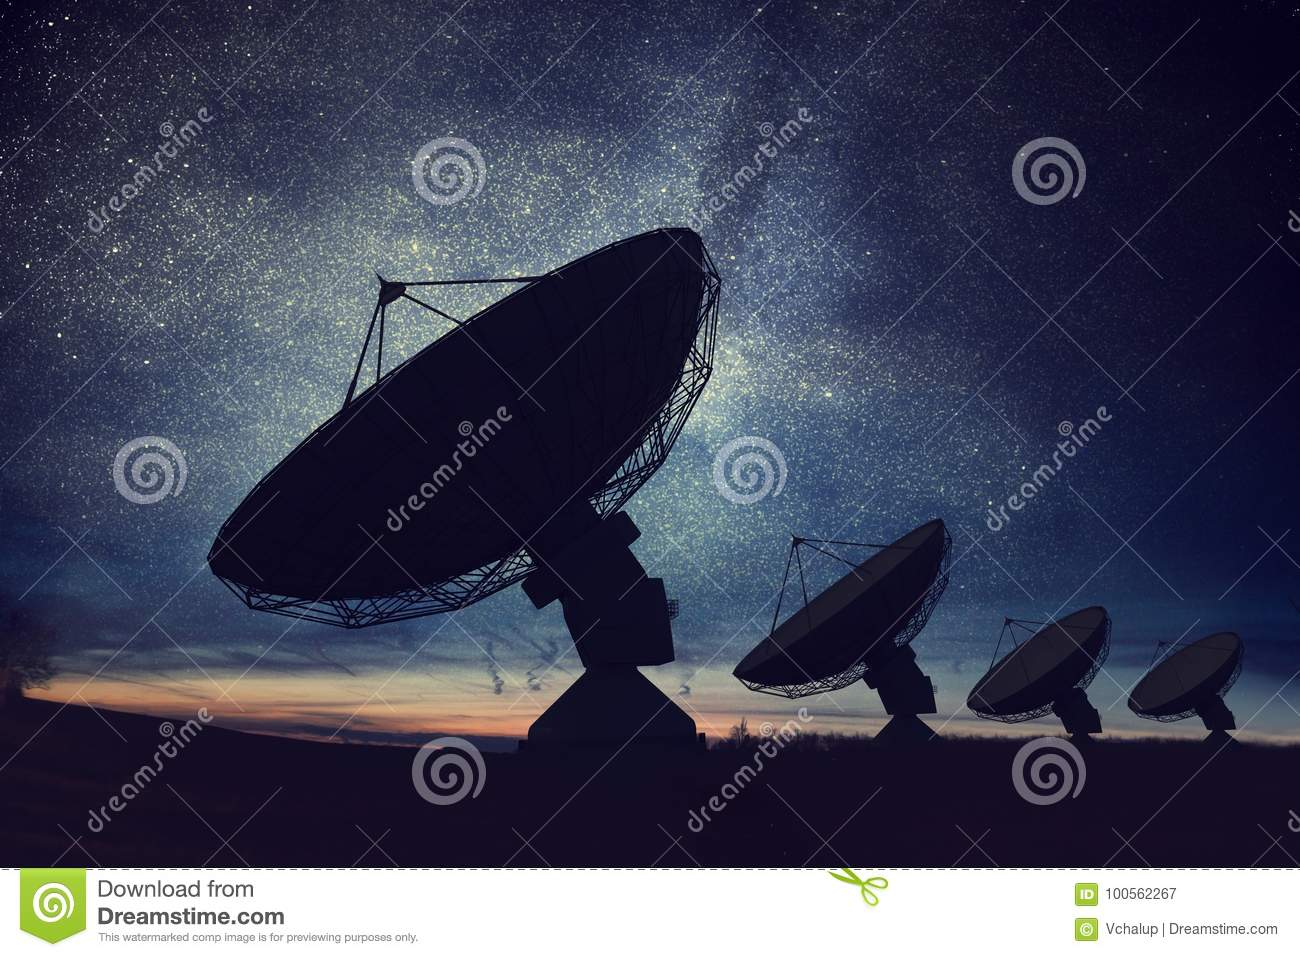 Silhouettes of satellite dishes or radio antennas against night sky. Space observatory